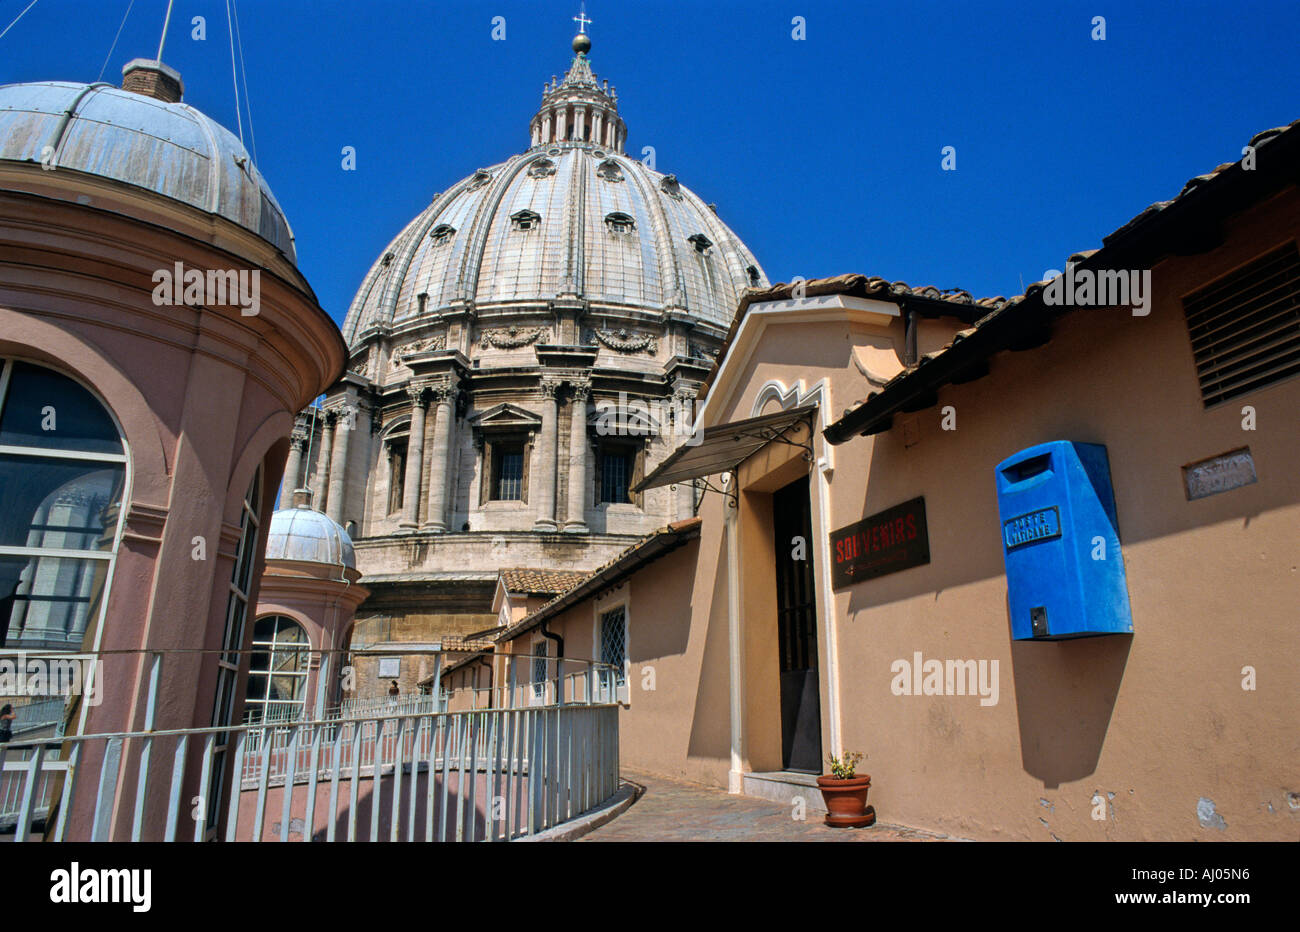 Dome of St Peter's Basilica and entrance to the souvenir shop on the roof, Vatican City - Stock Image